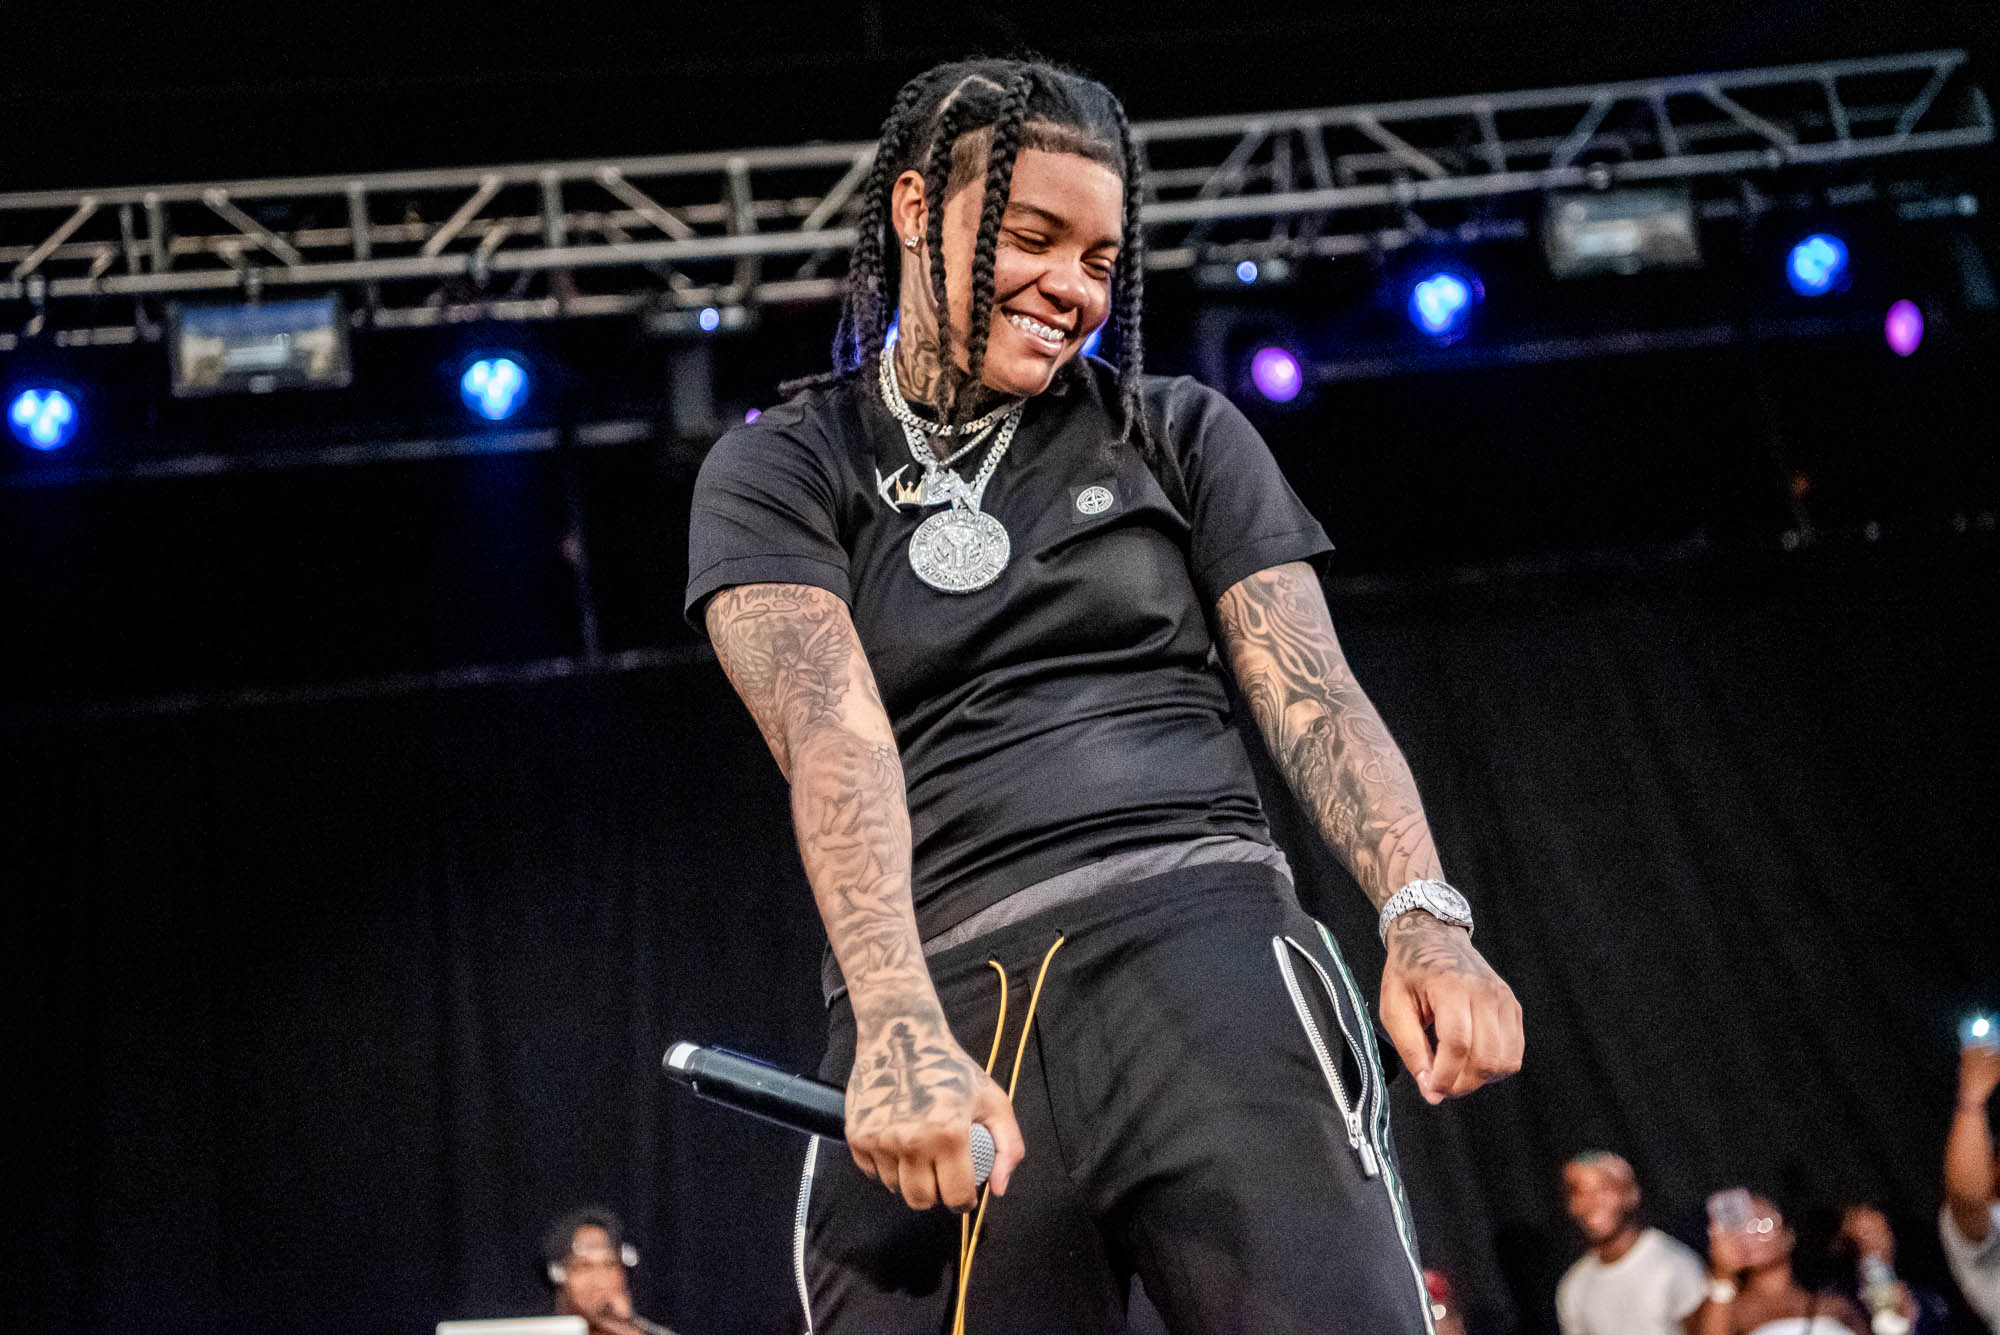 Young M.A performs at Betsy Head Park in Brooklyn, NY on Friday, June 28, 2019.